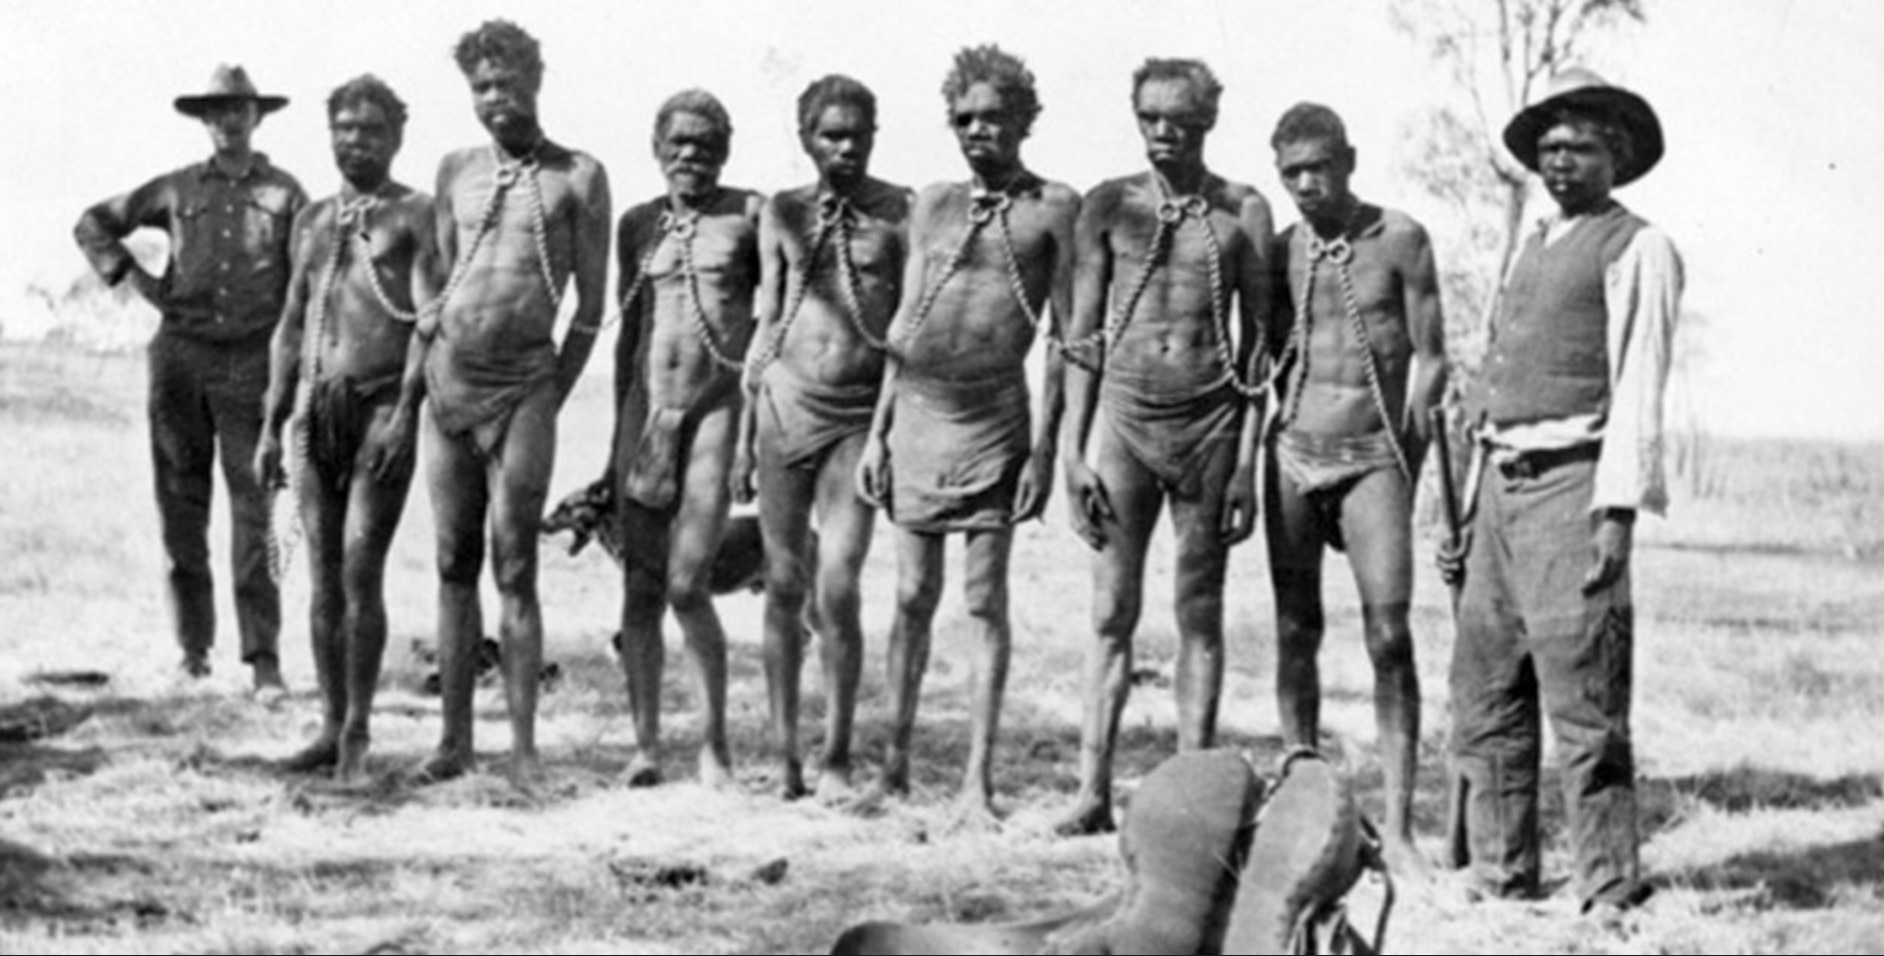 Aboriginal prisoners are brought to Wyndham for spearing cattle, 1930.